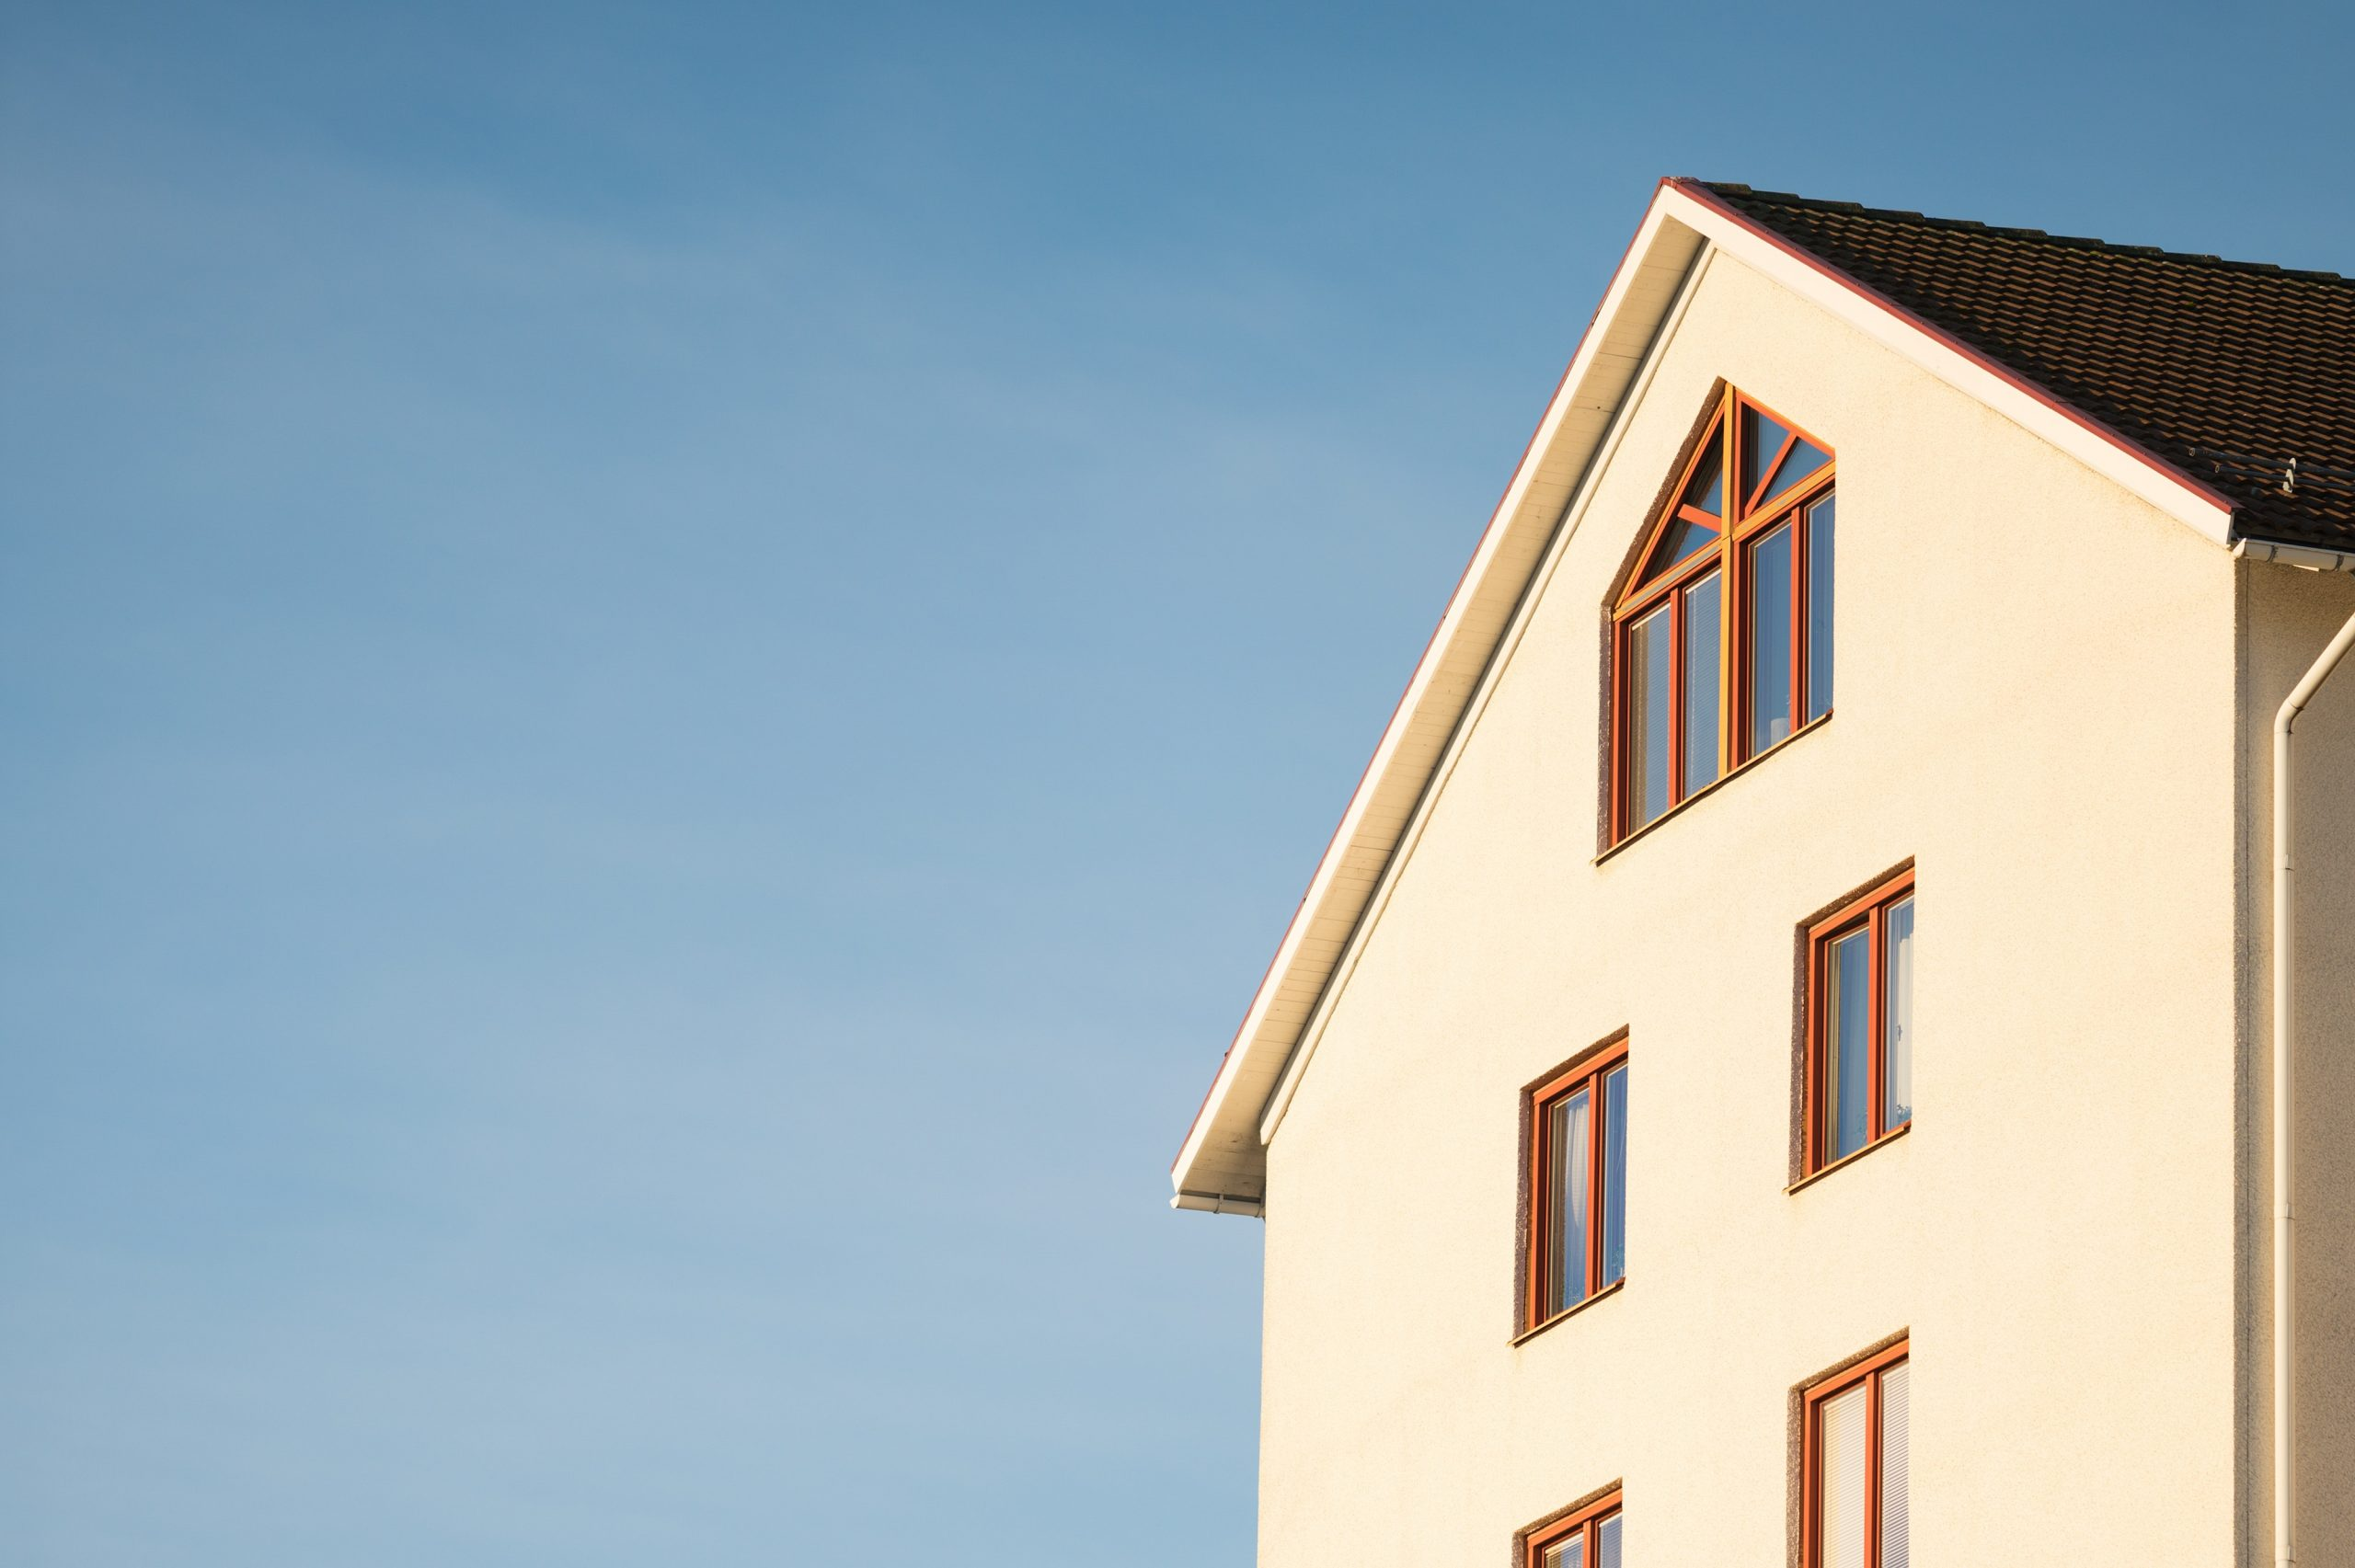 What colour should window frames be?